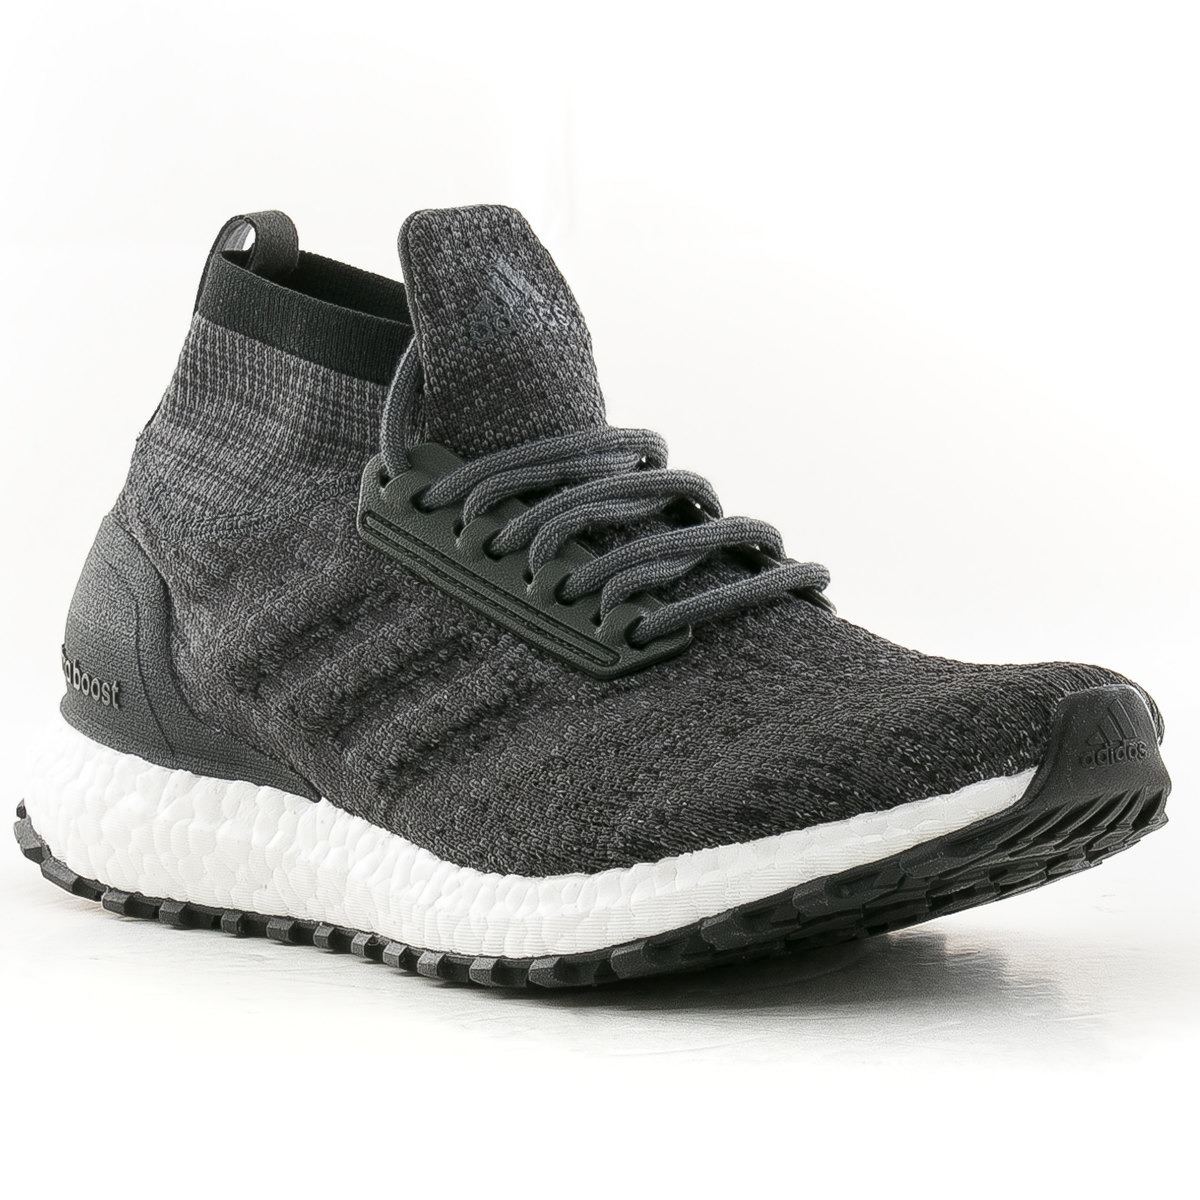 9f20cd04 Zapatillas Ultraboost All Terrain Ltd adidas - $ 3.449,00 en Mercado ...